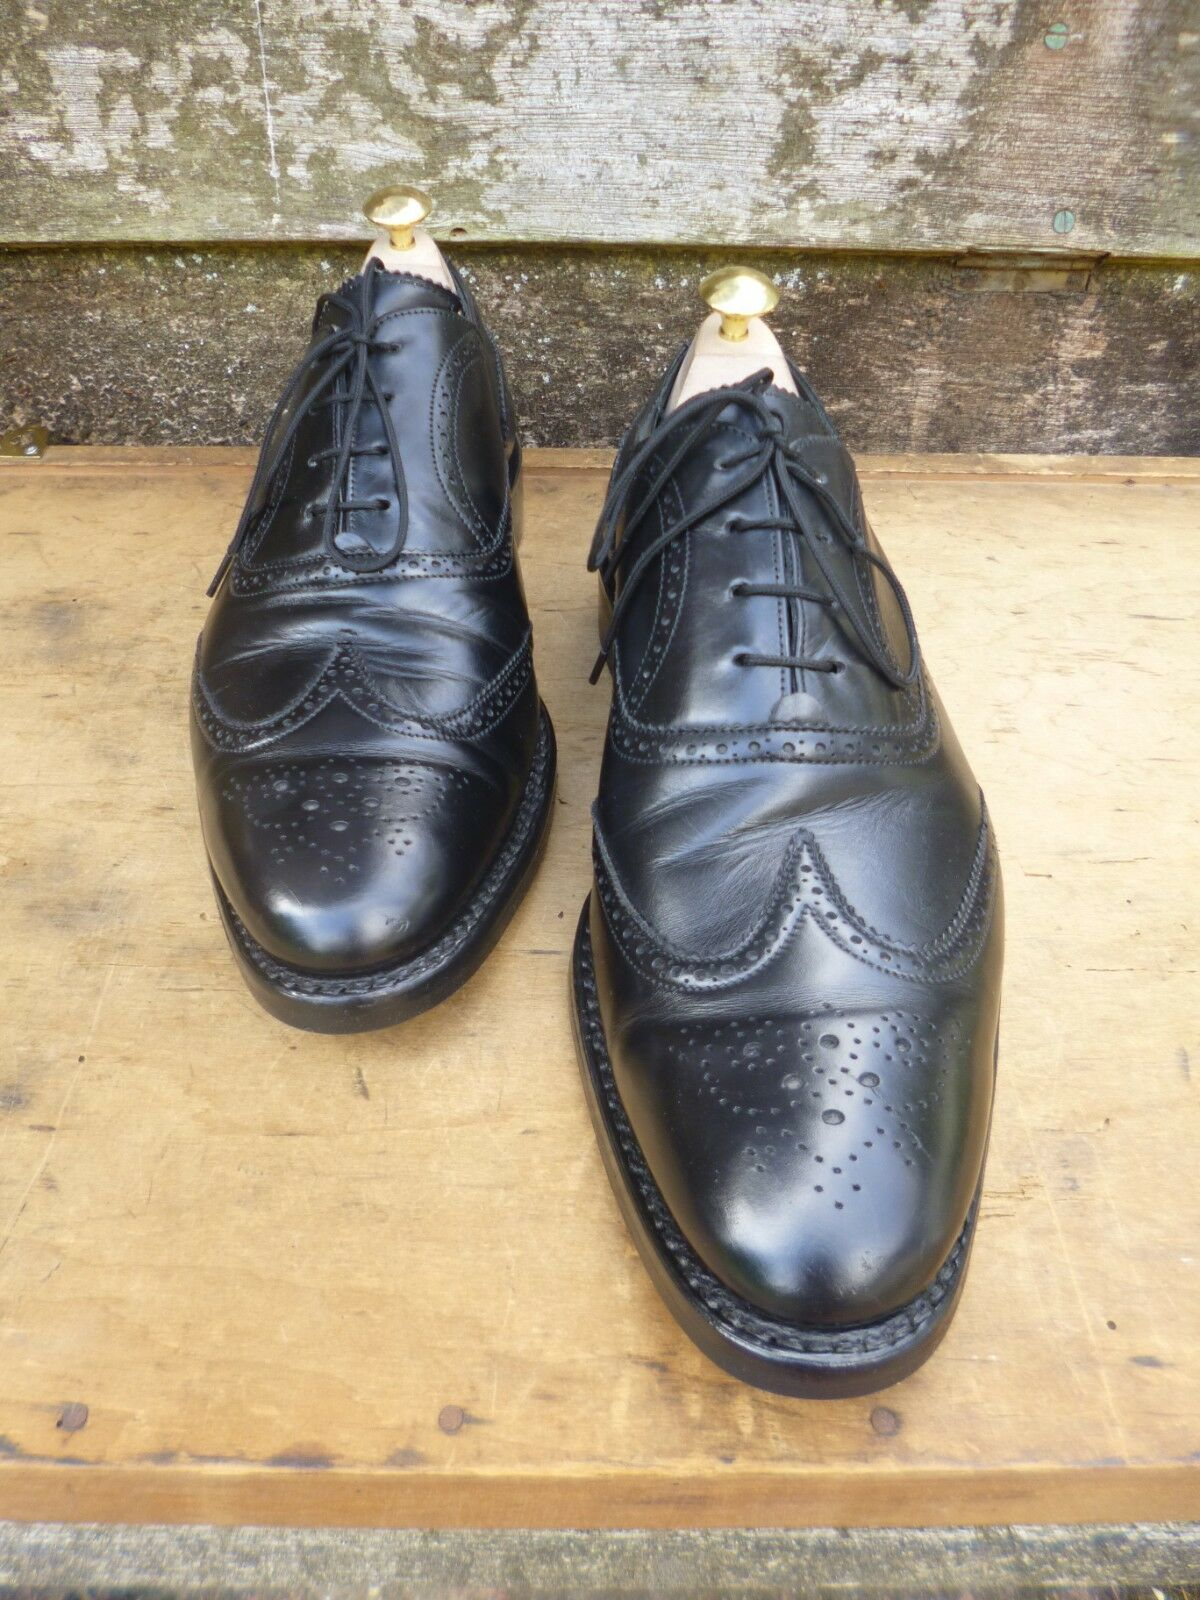 CHEANEY / – CHURCH BROGUES – BLACK – / UK 9.5 – GLADSTONE – EXCELLENT CONDITION bc24ee